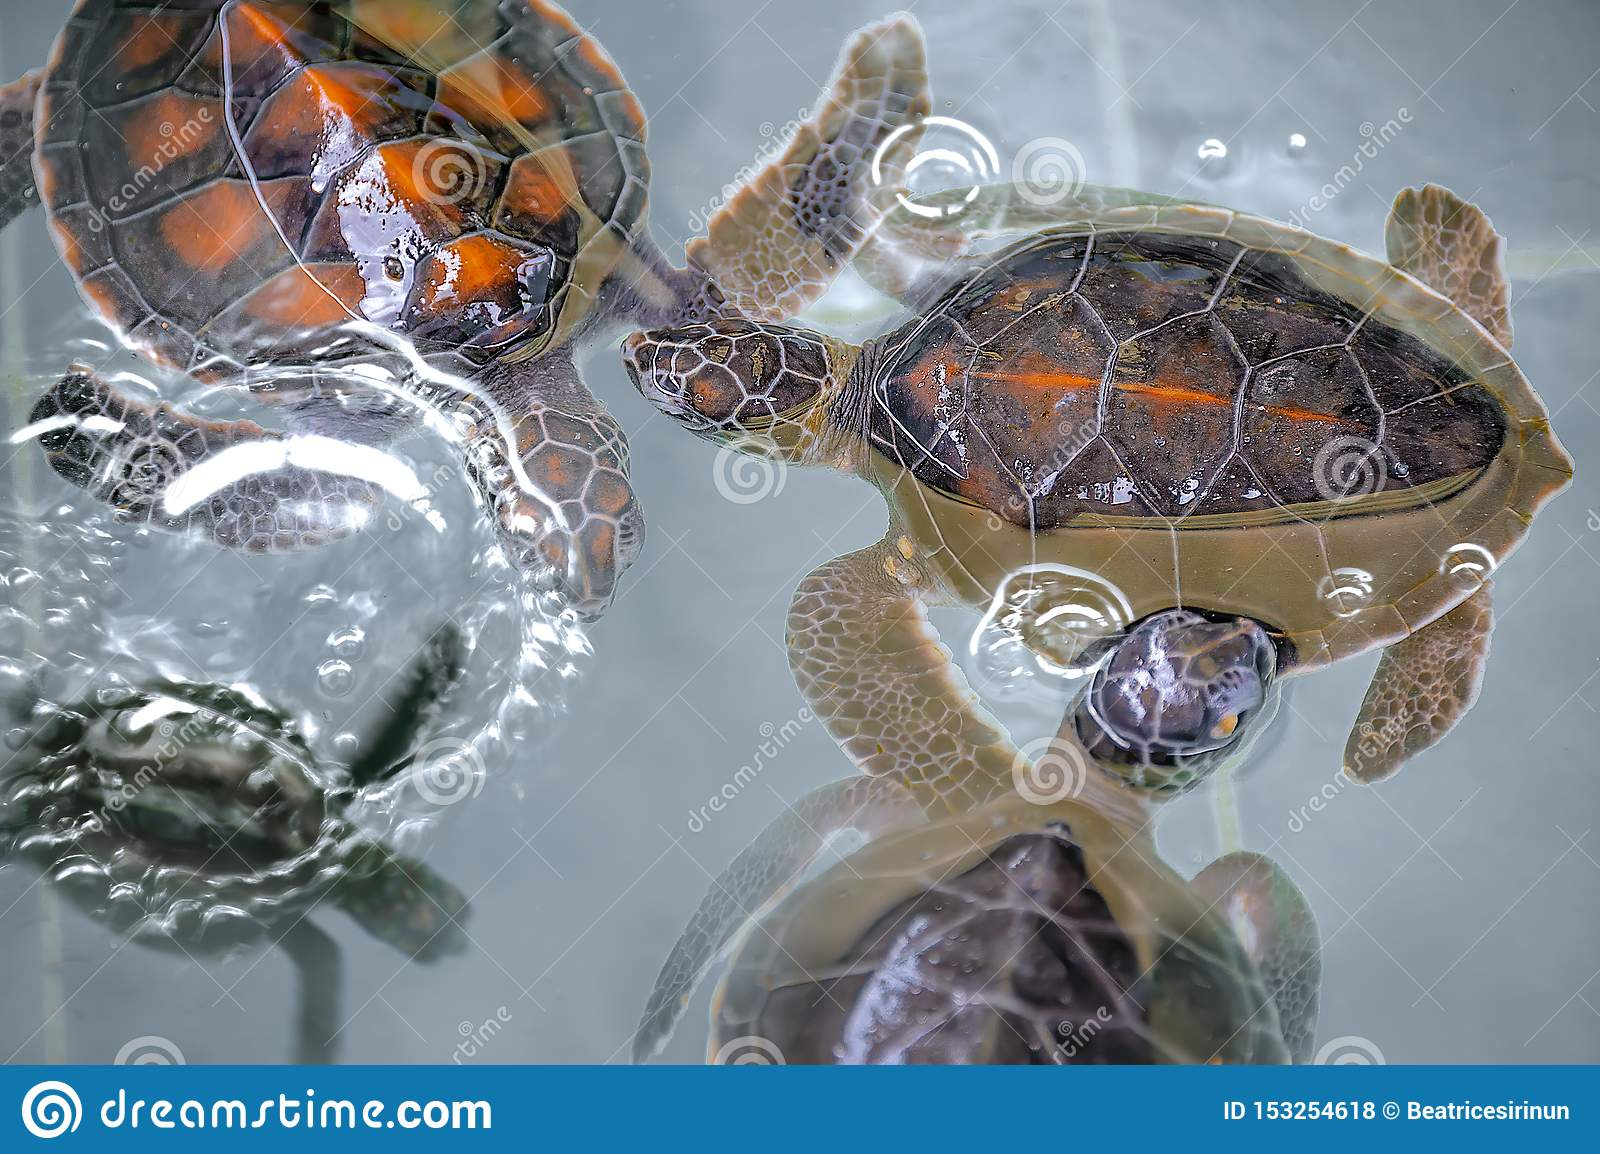 Close-up of baby Hawksbill sea turtles.